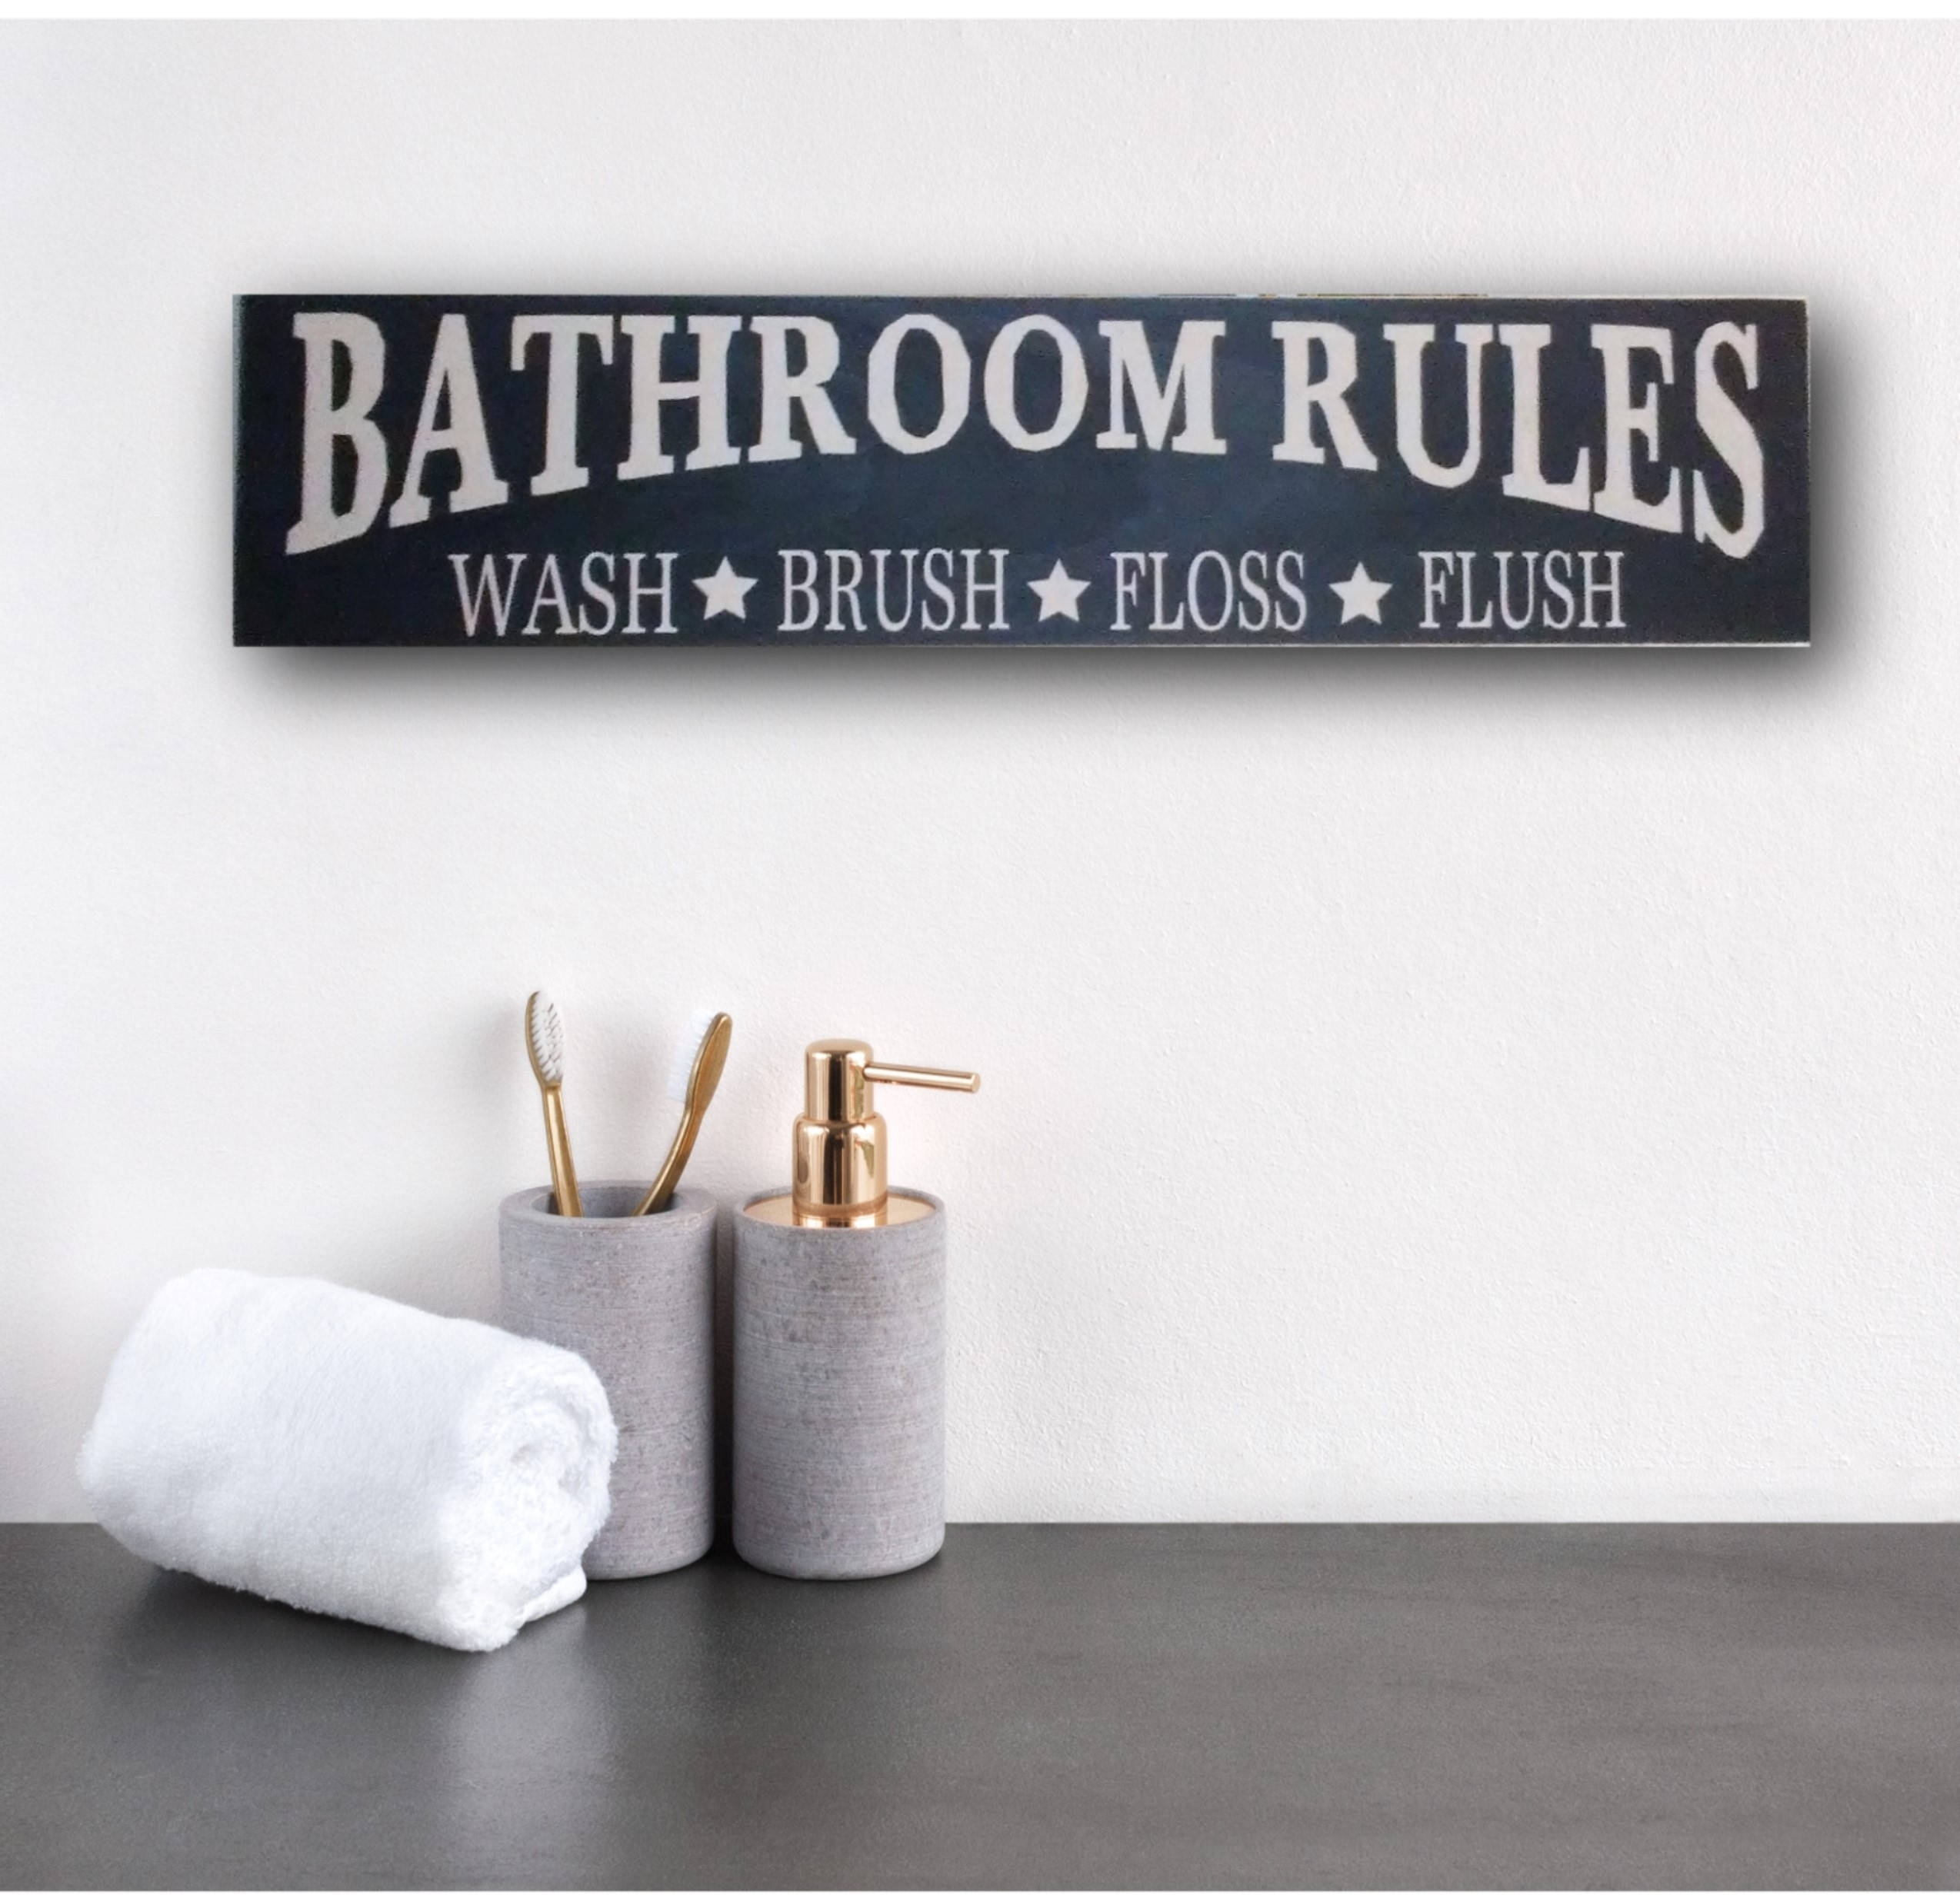 Rustic Bathroom Sign, Rustic Bathroom Rules Sign, Rustic Bathroom Intended For Most Recently Released Bathroom Rules Wall Art (View 16 of 20)